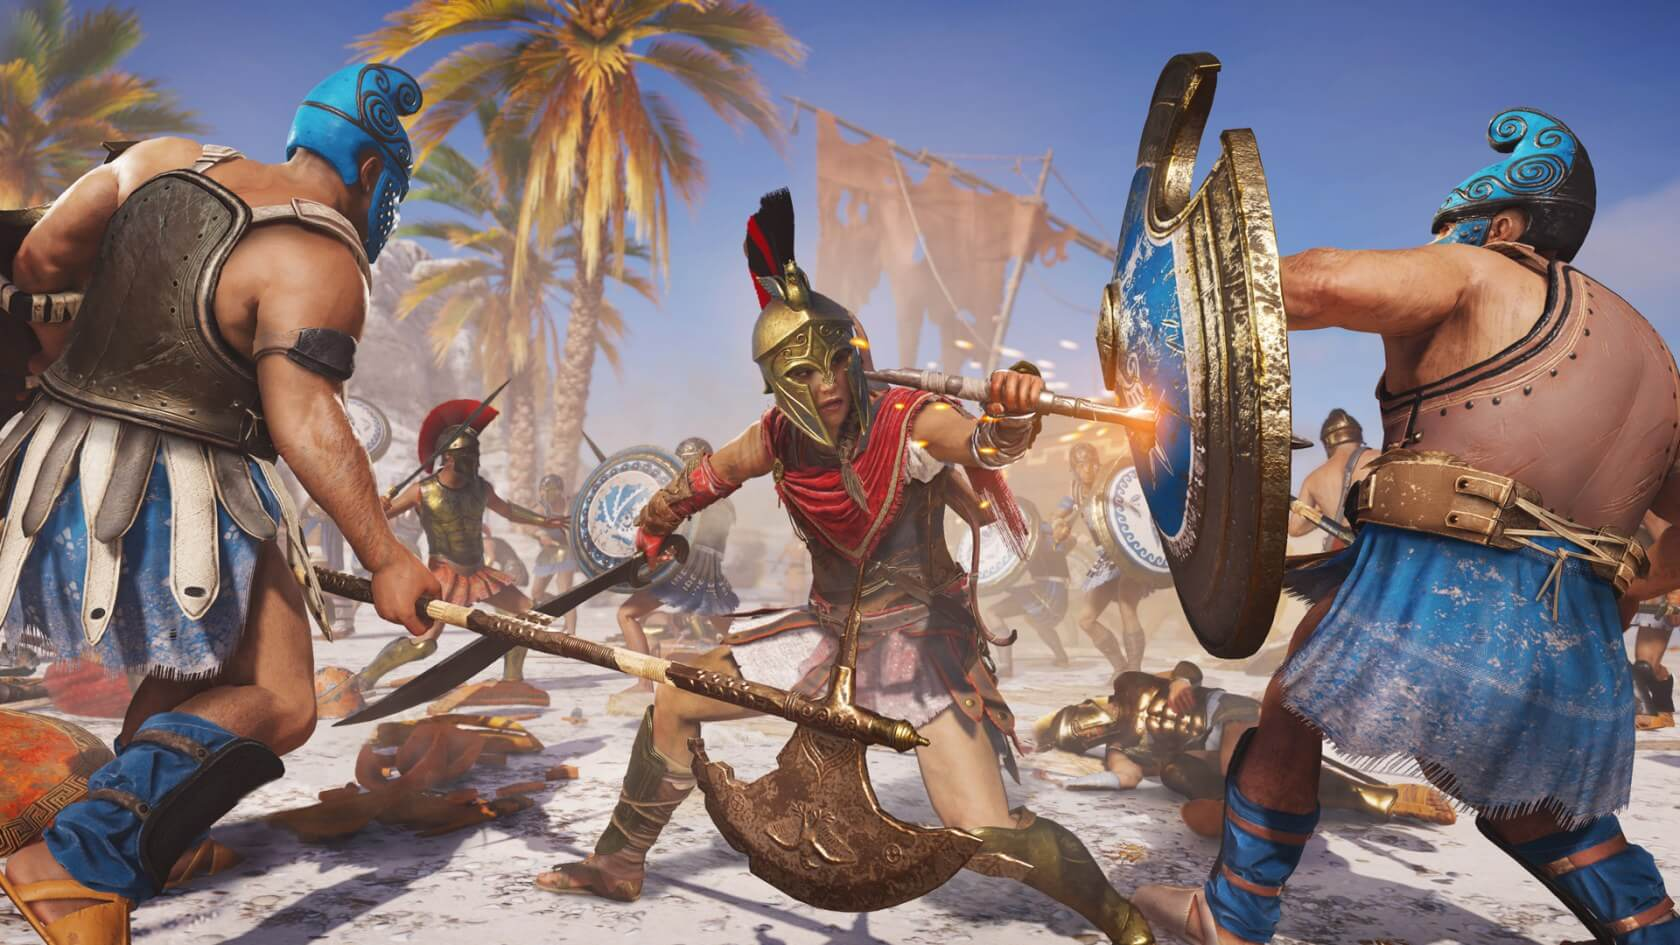 Ubisoft says massive crunch wasn't needed to develop Assassin's Creed Odyssey